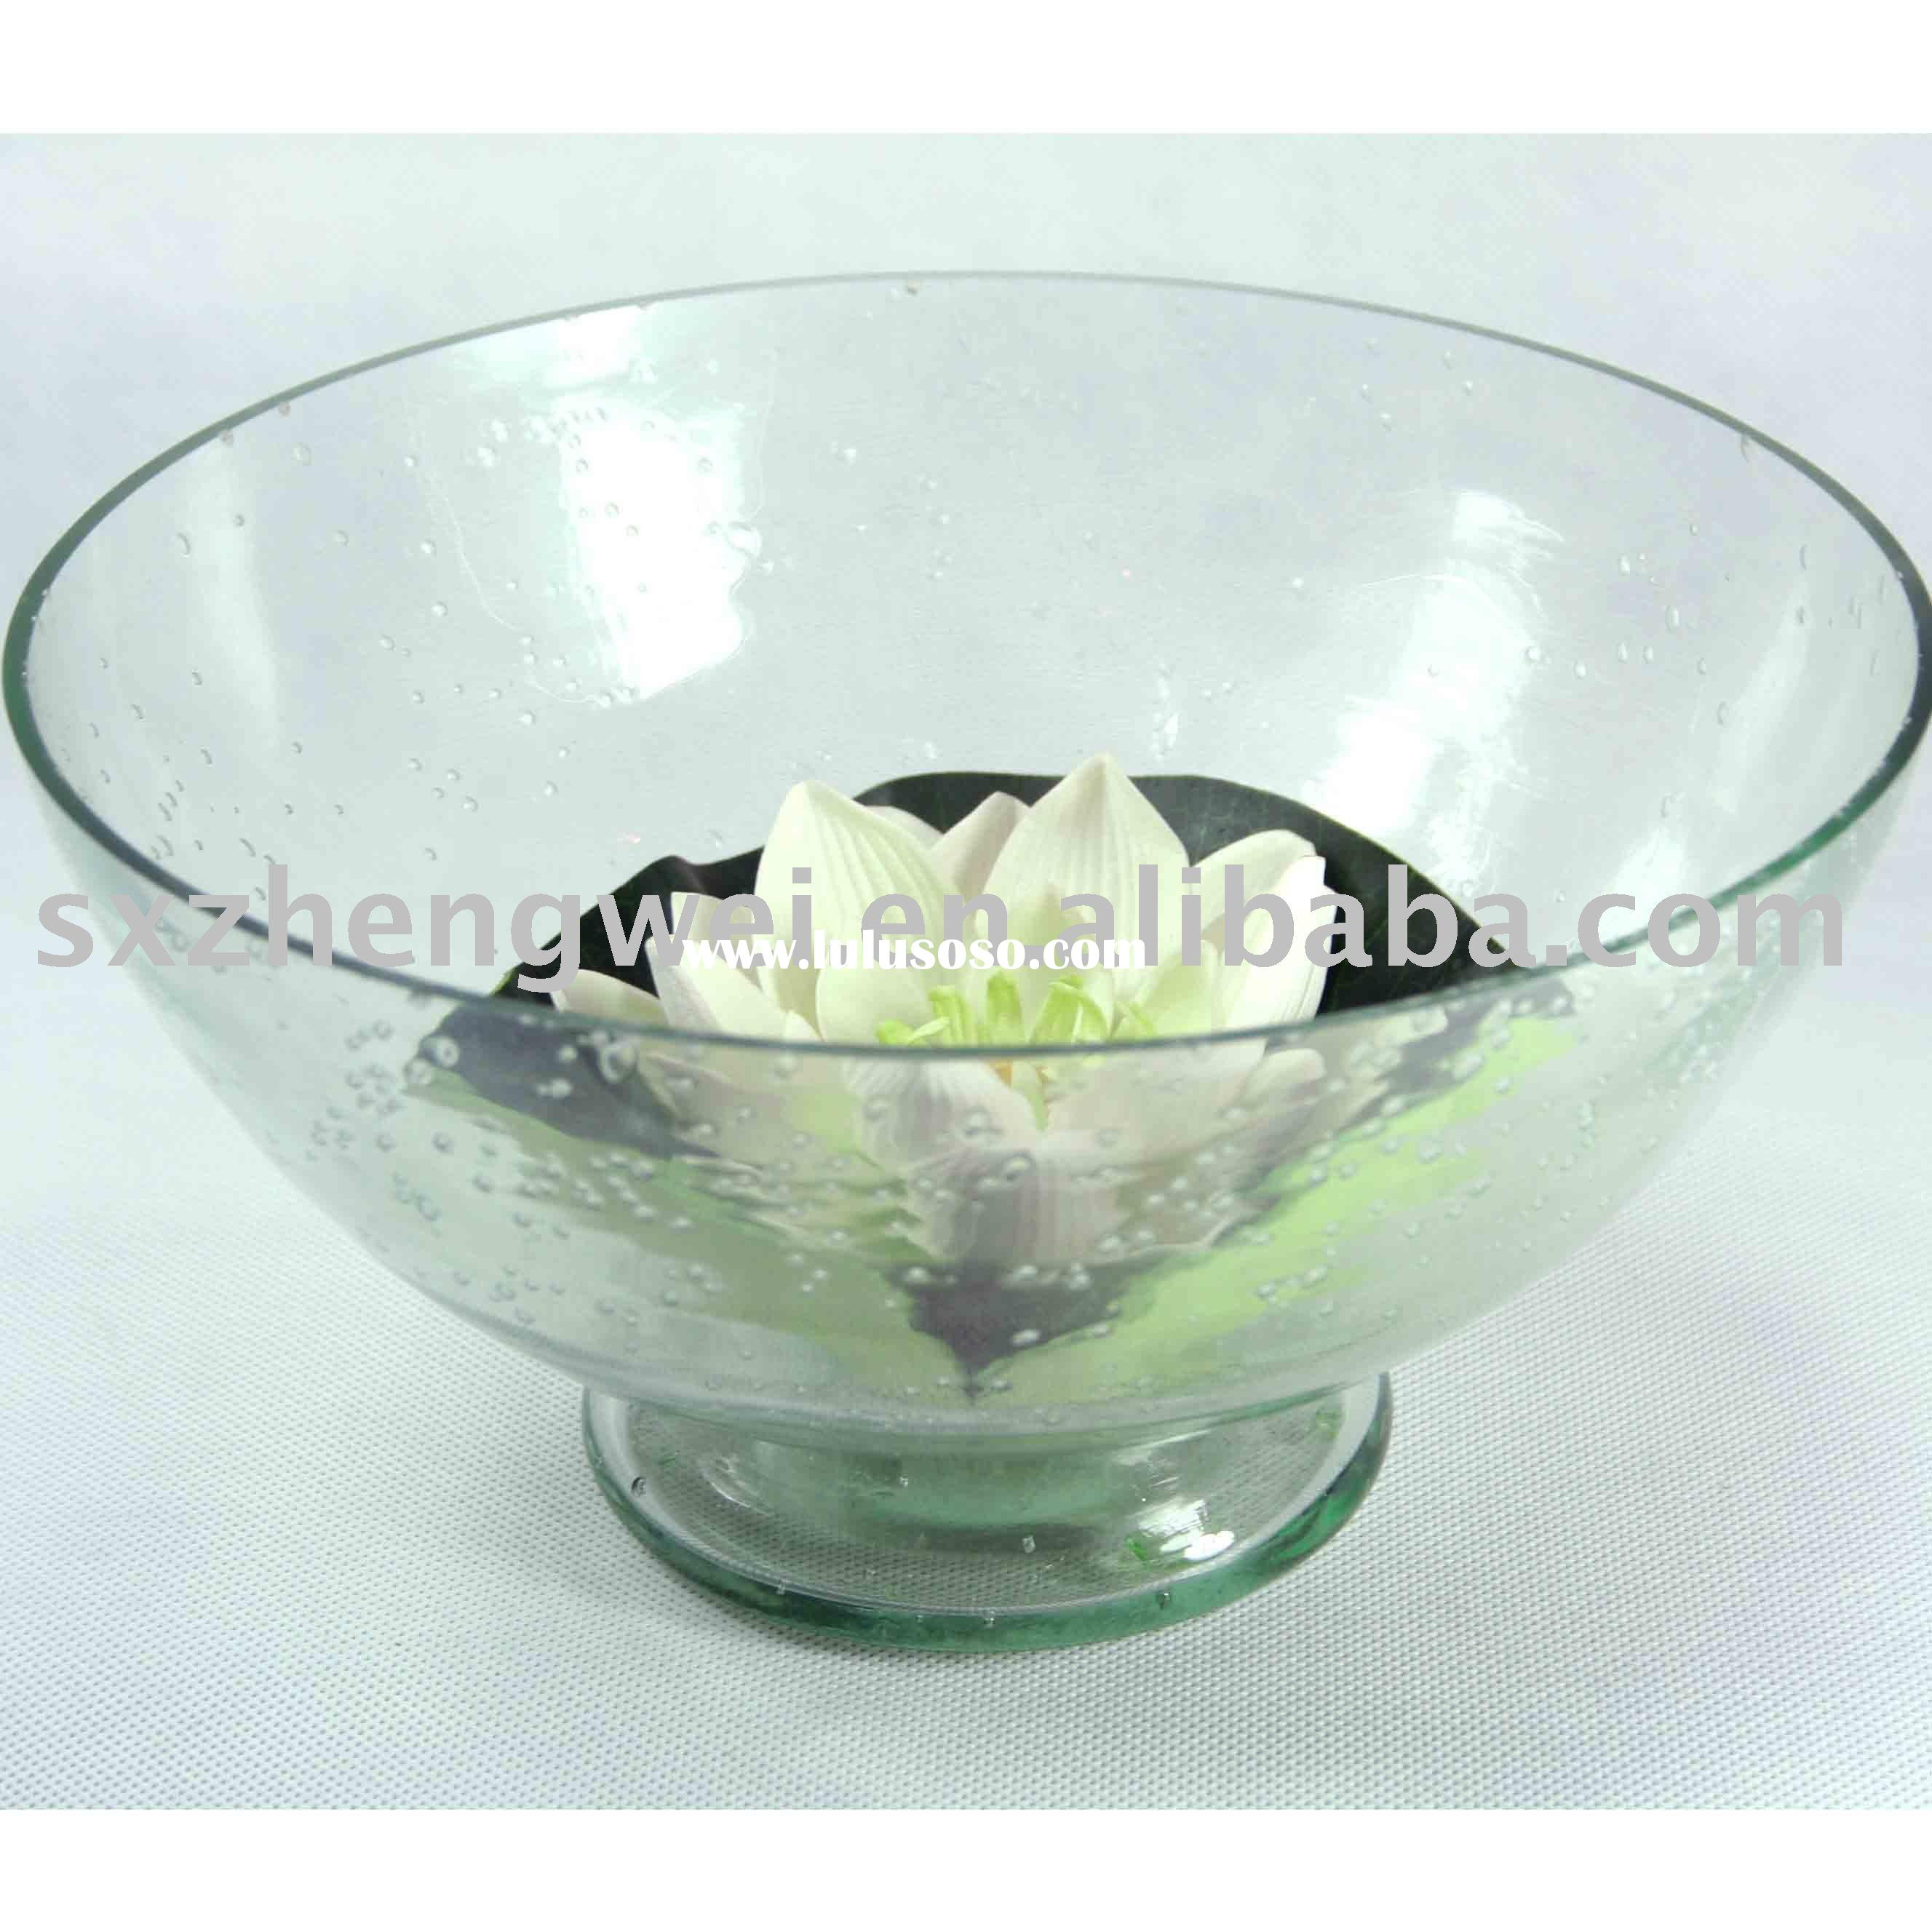 Recycled glass floating candle holder bowl